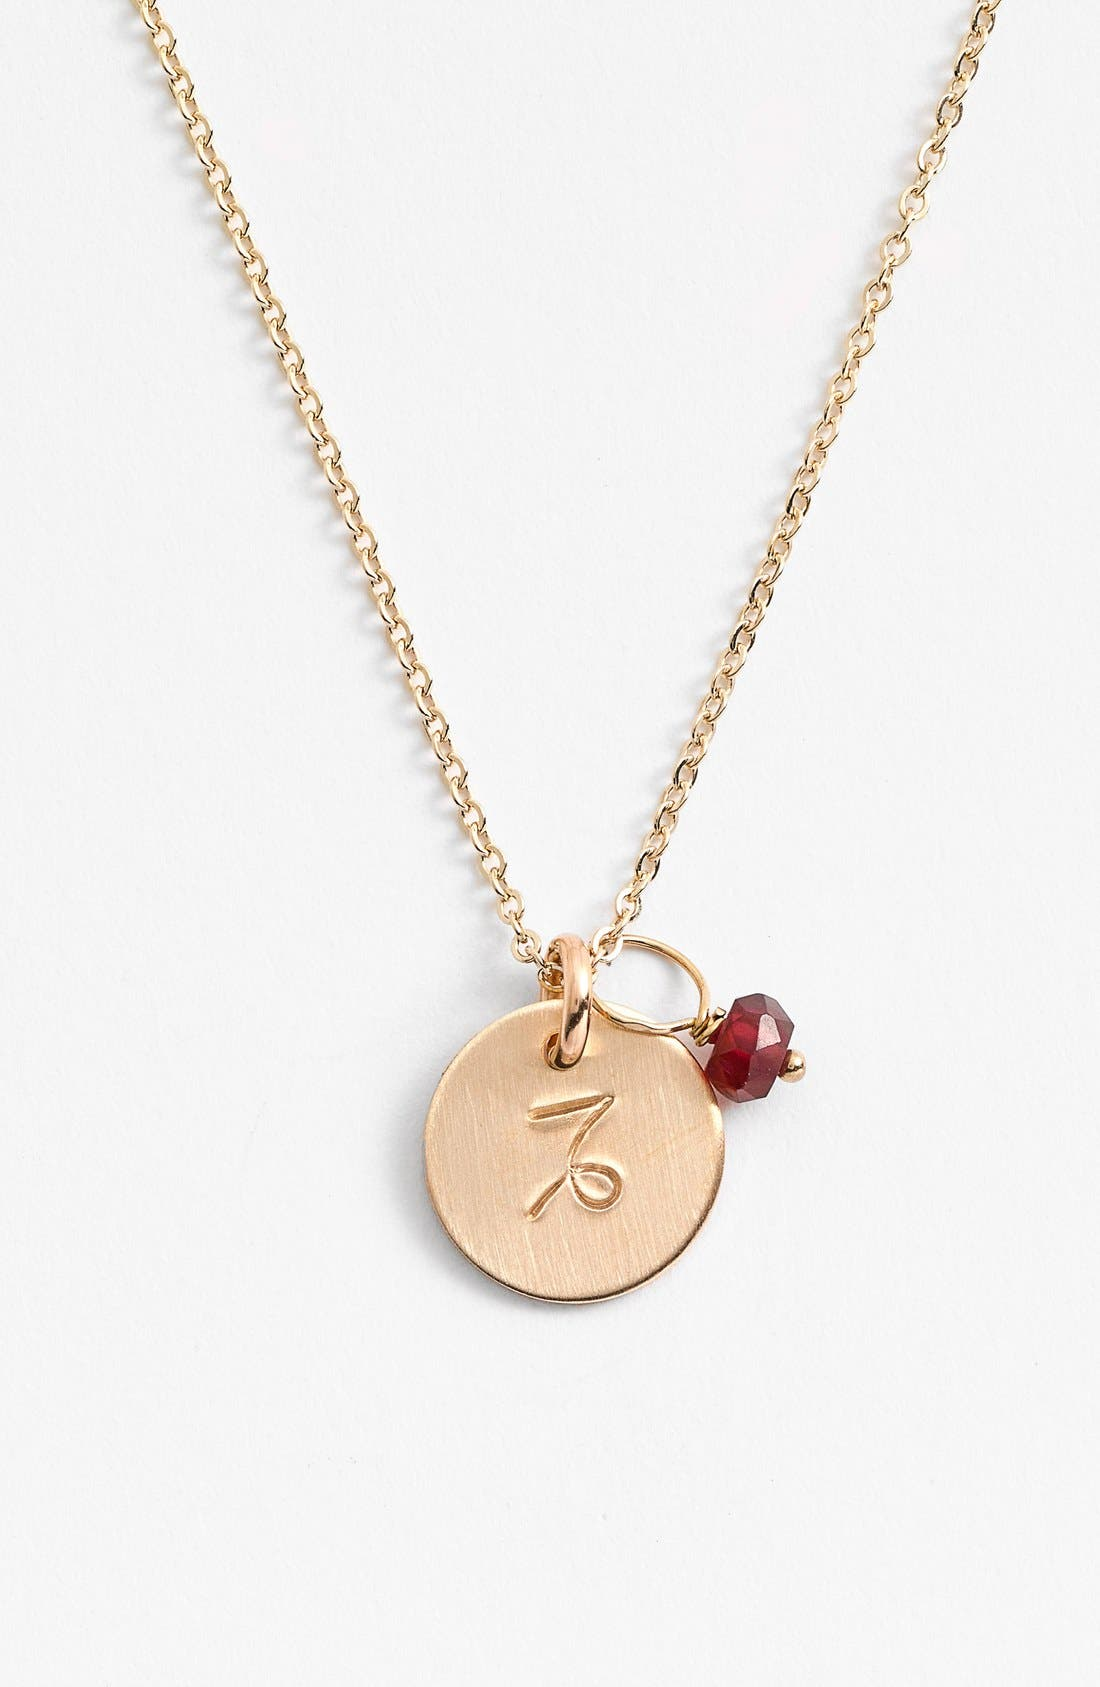 14k-Gold Fill & Semiprecious Birthstone Zodiac Mini Disc Necklace,                         Main,                         color, CAPRICORN